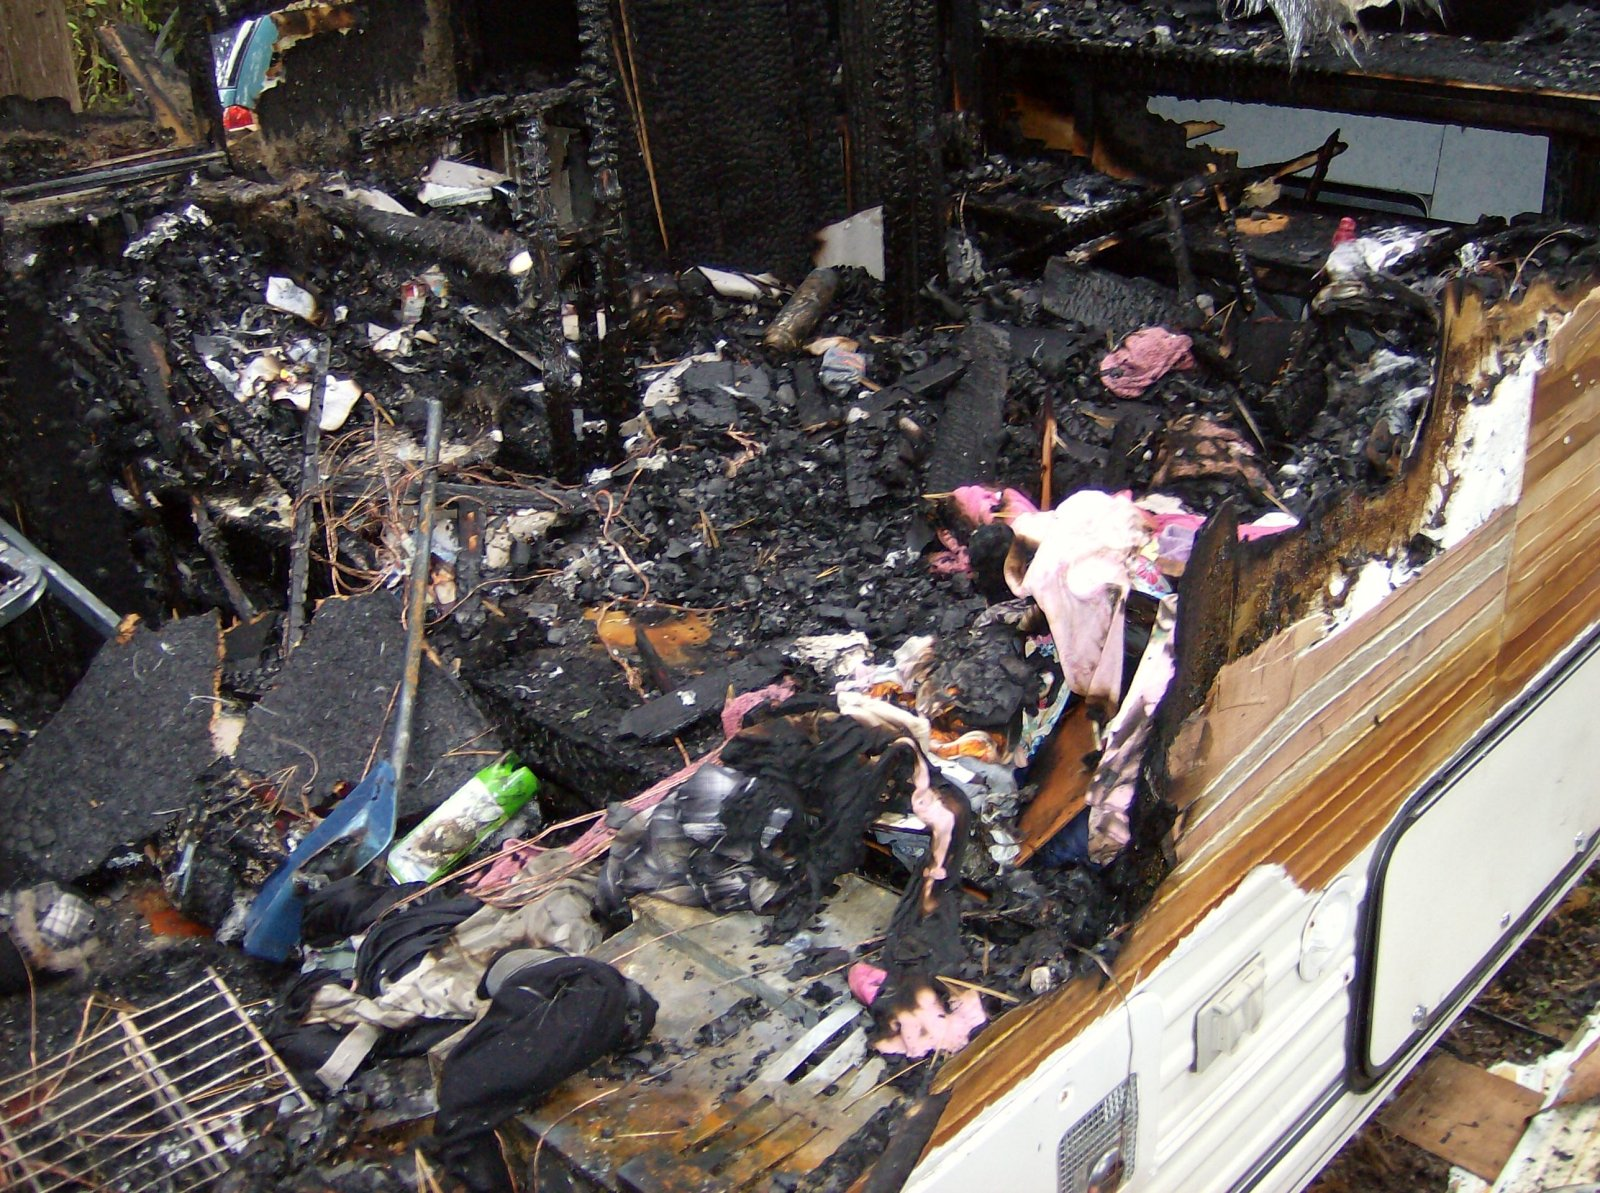 Click image for larger version  Name:Fire Damaged Trailer 008.jpg Views:112 Size:484.5 KB ID:112192